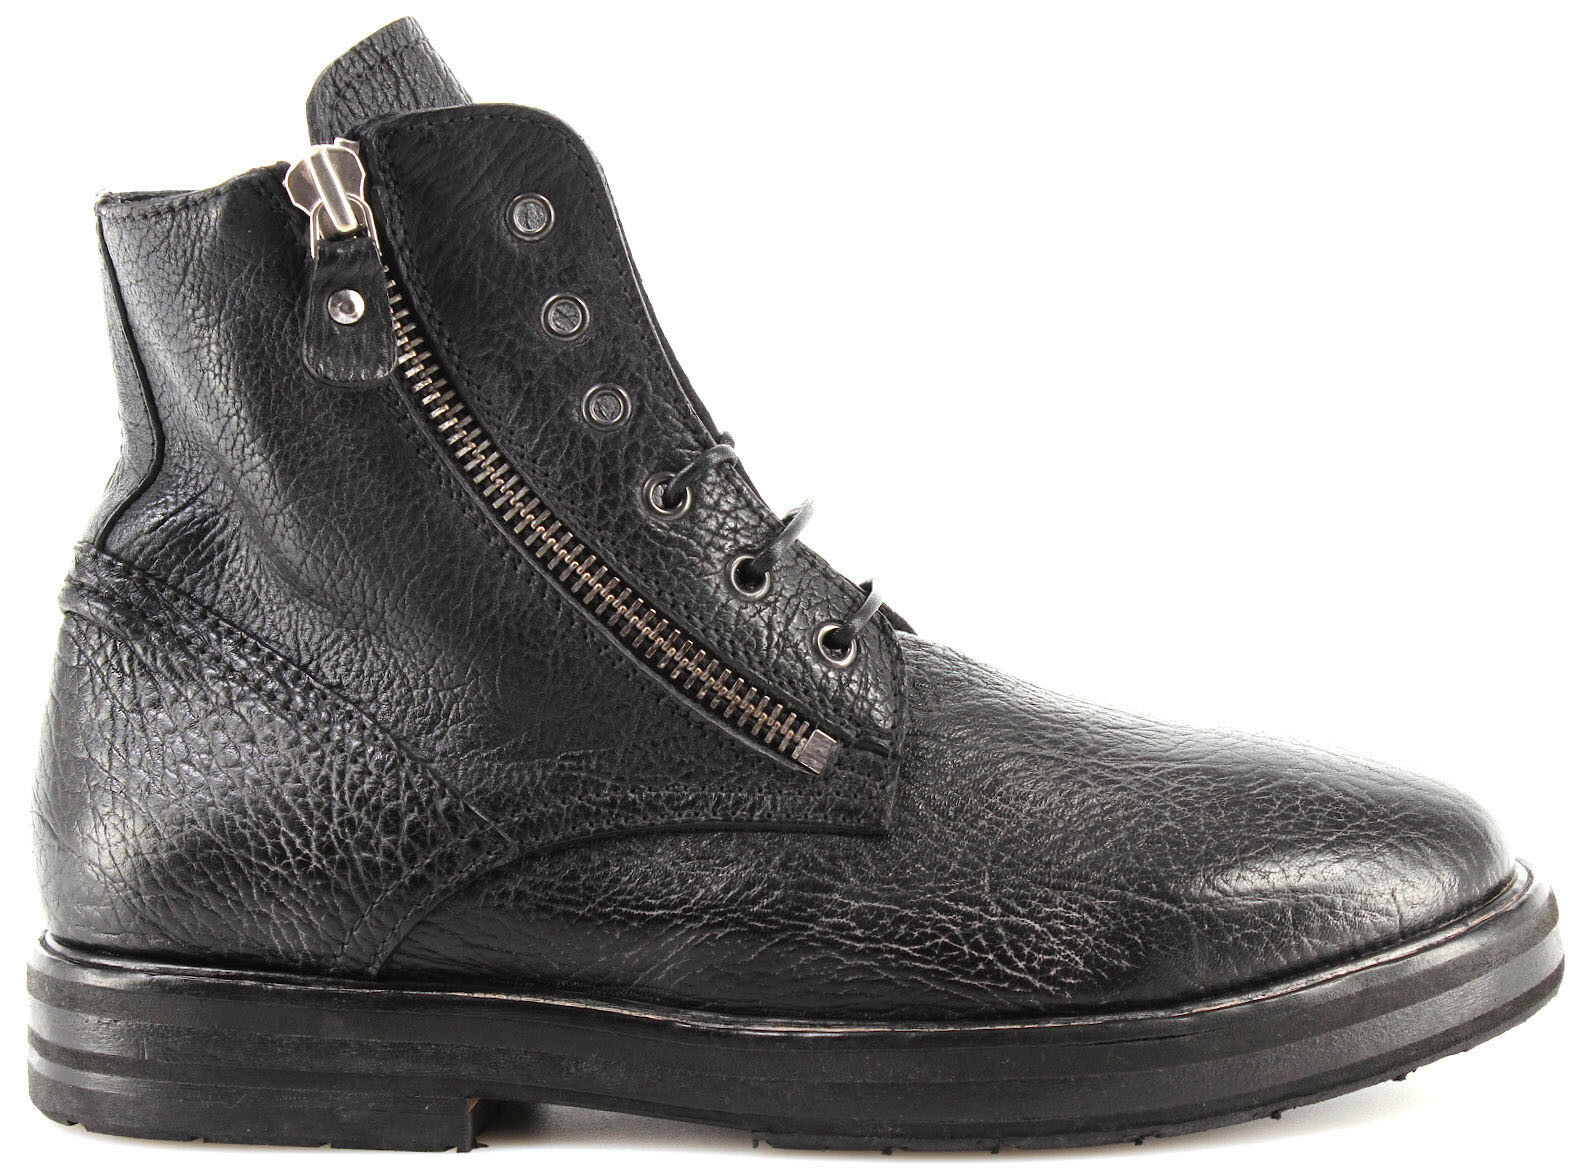 Zapatos Tronchetti hombre MOMA 69701-RA Ruga In Nero Pelle Vintage Made In Ruga Italy New 8d3812